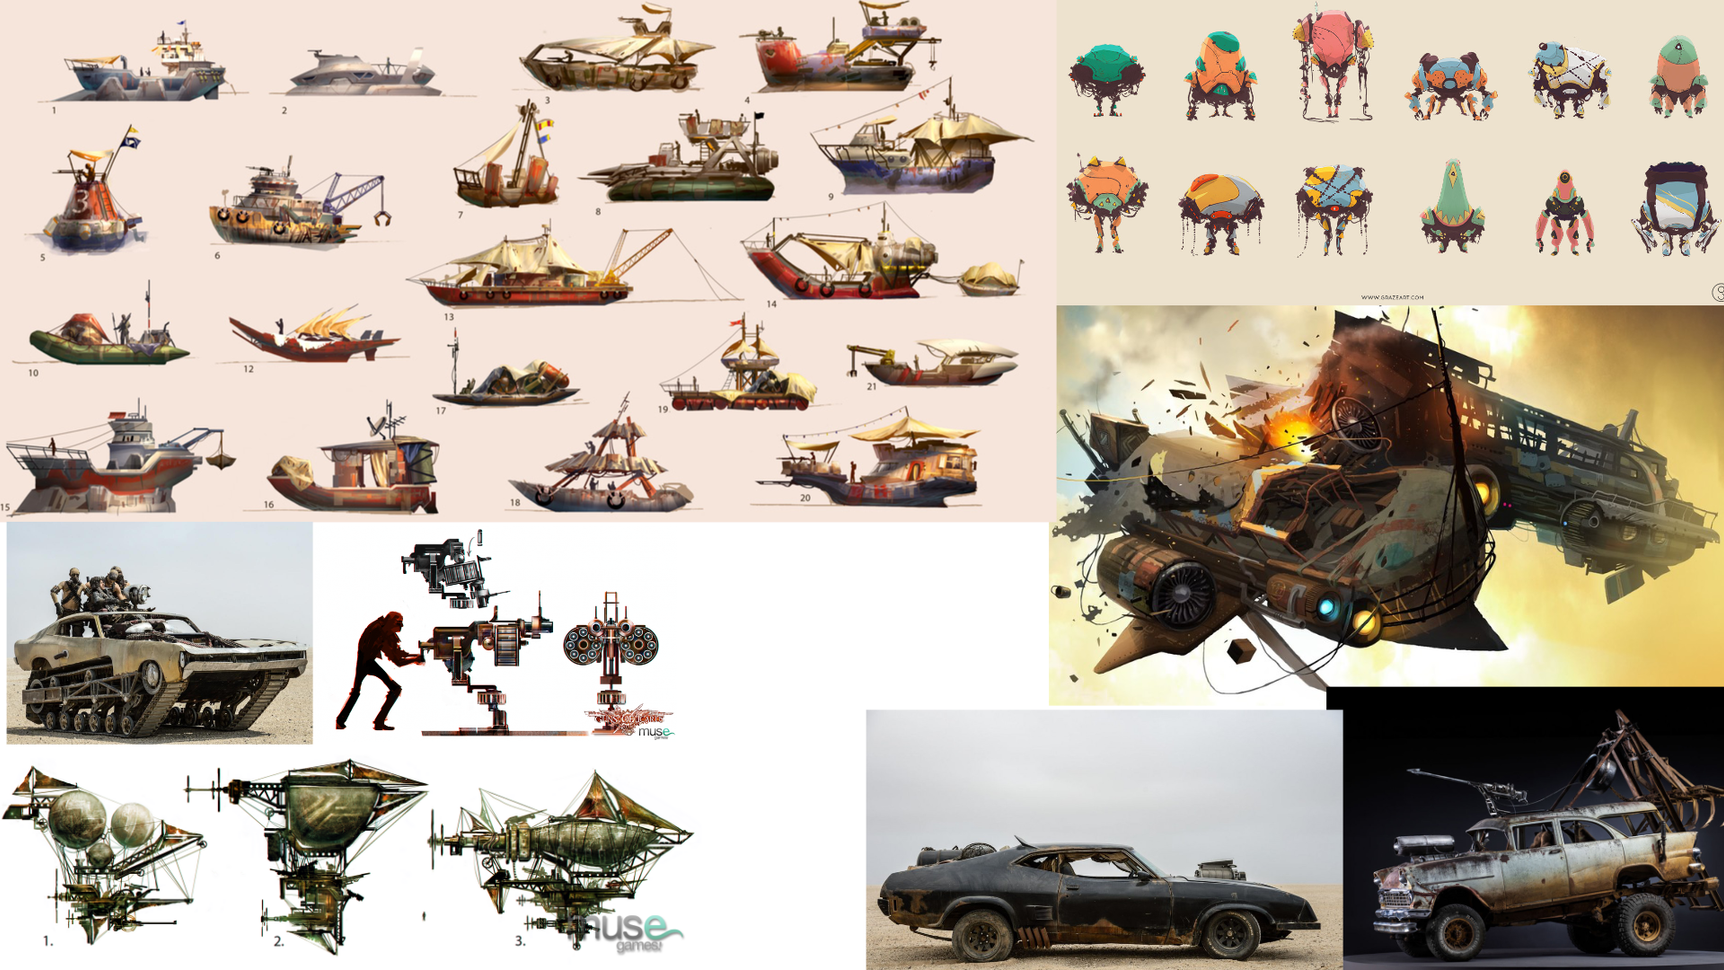 Ship reference 4